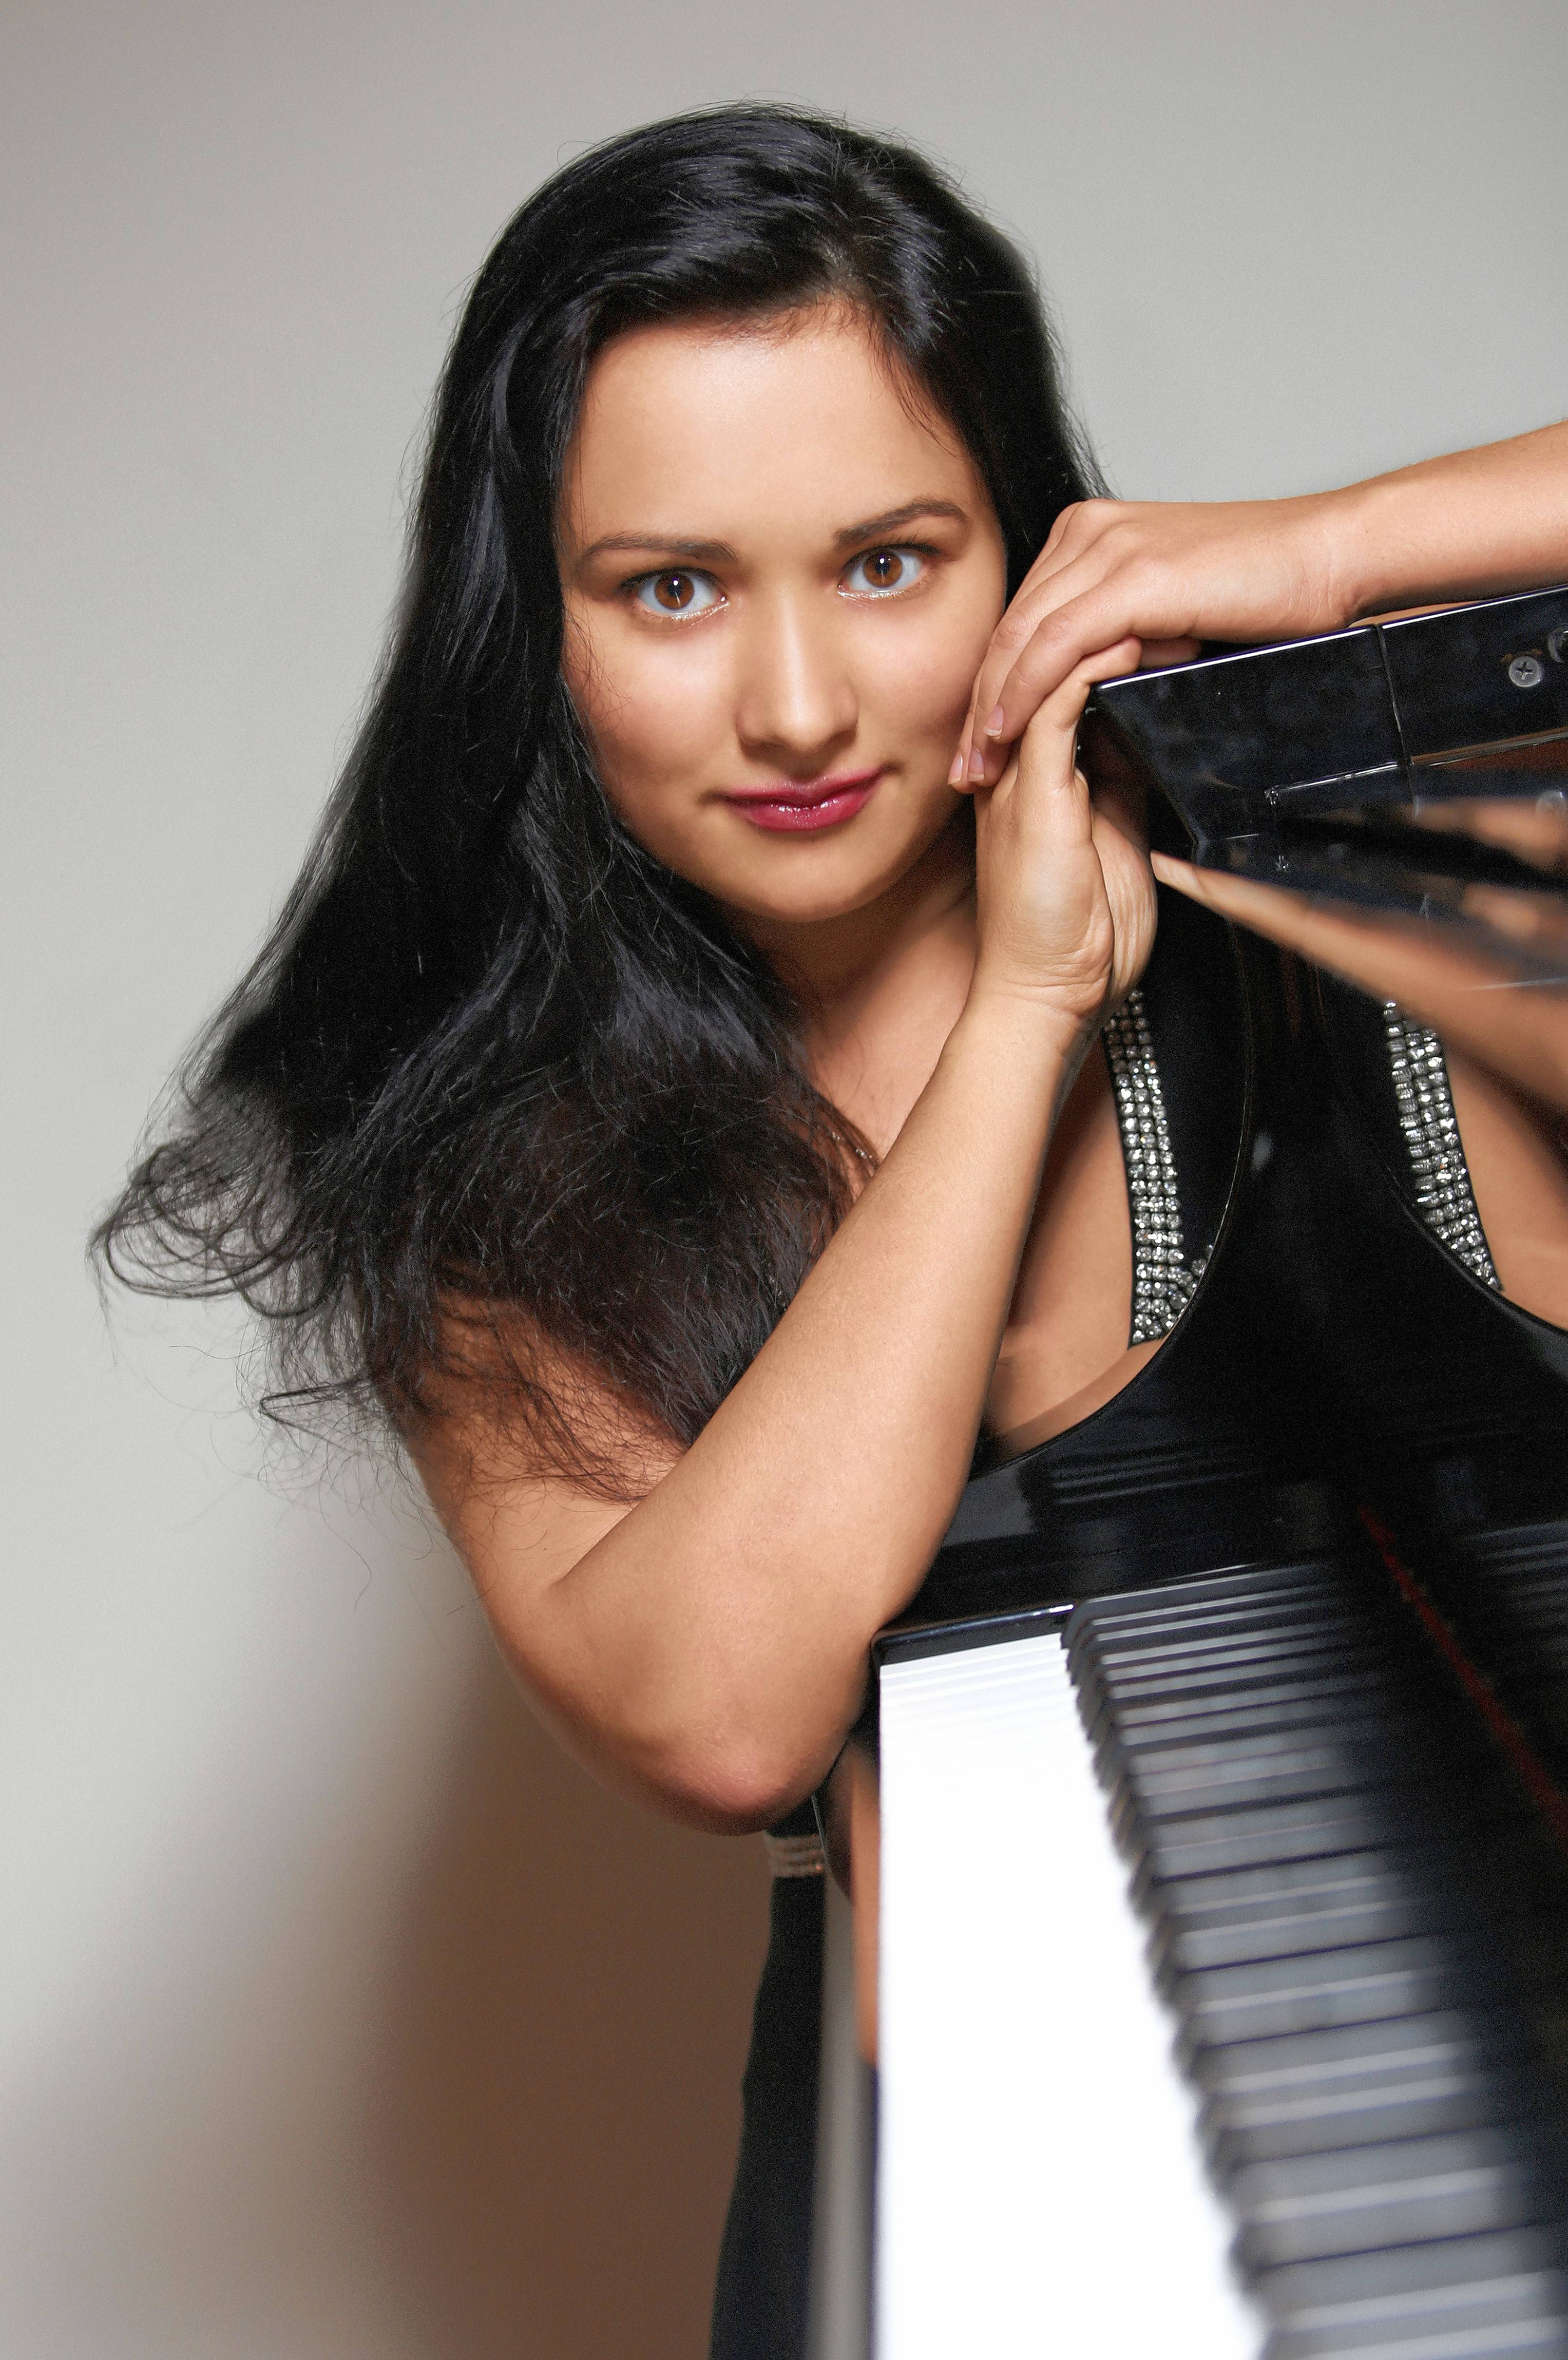 Pianist Dinara Klinton performs a free concert at the Gail Borden Library